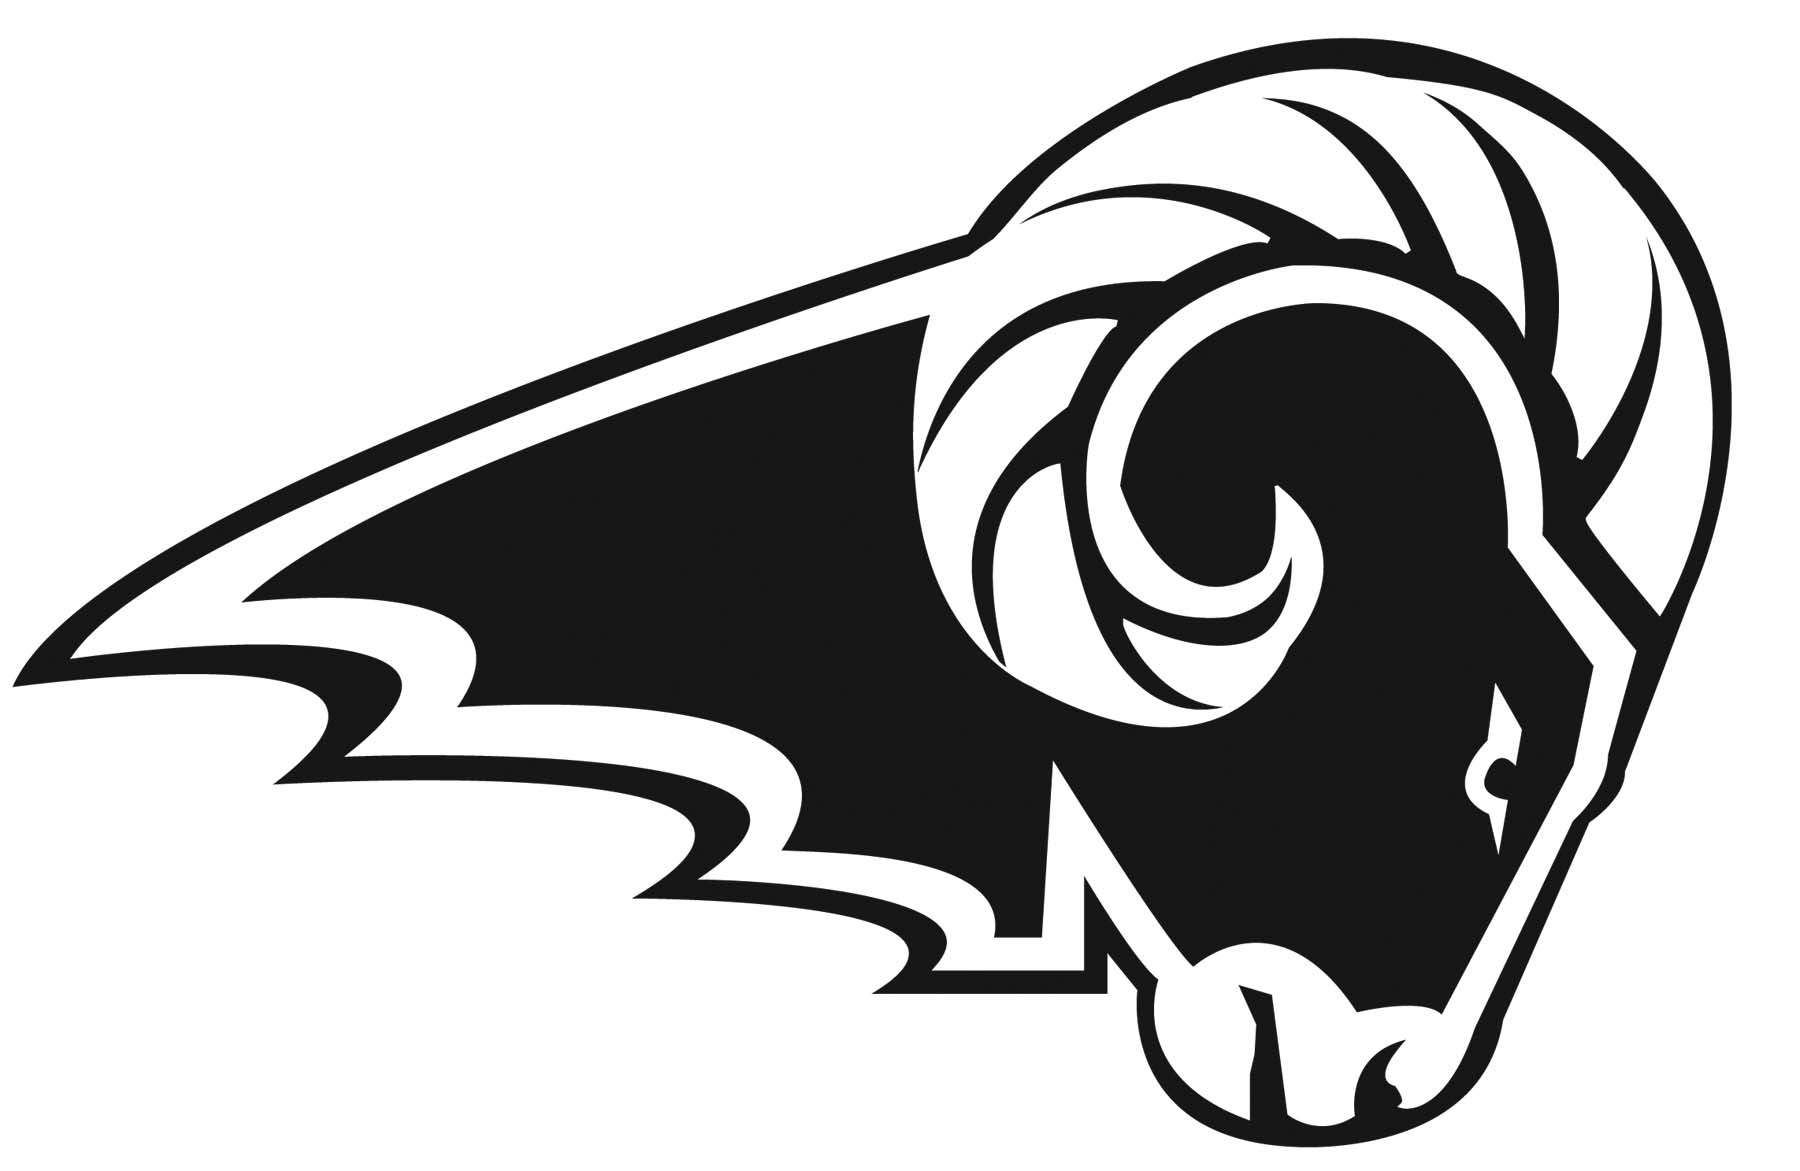 Ram head clipart black and white